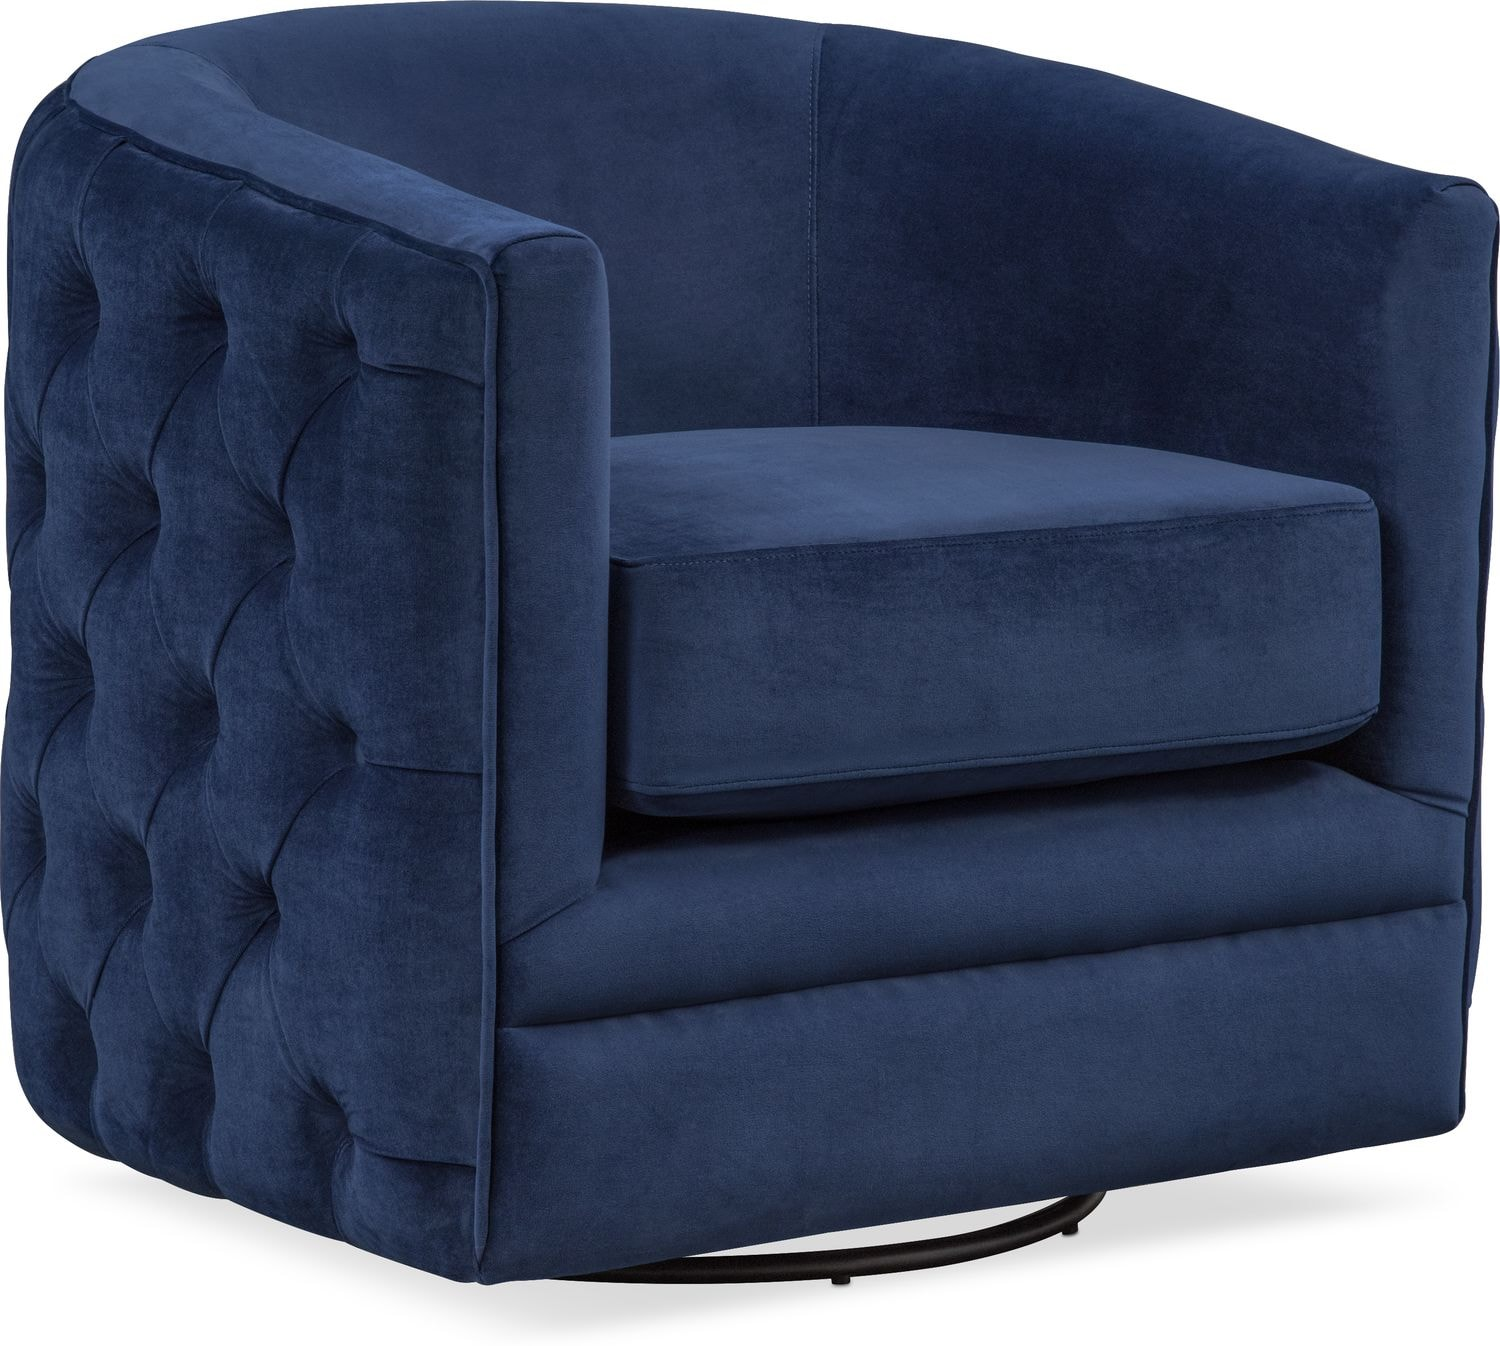 Click to change image. & Chloe Swivel Chair - Blue | American Signature Furniture